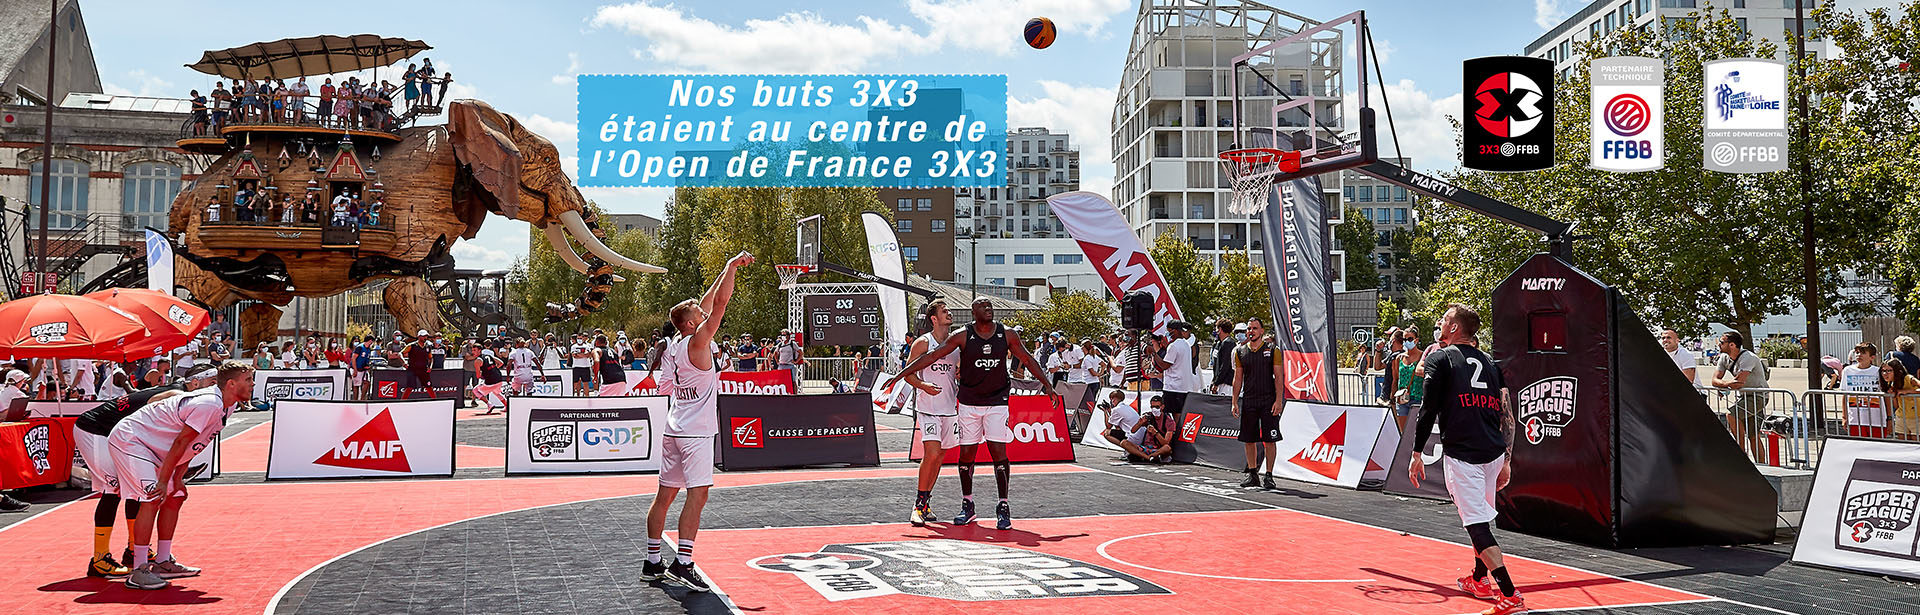 banner-home-OPEN FRANCE 3X3 3 Aout-B1